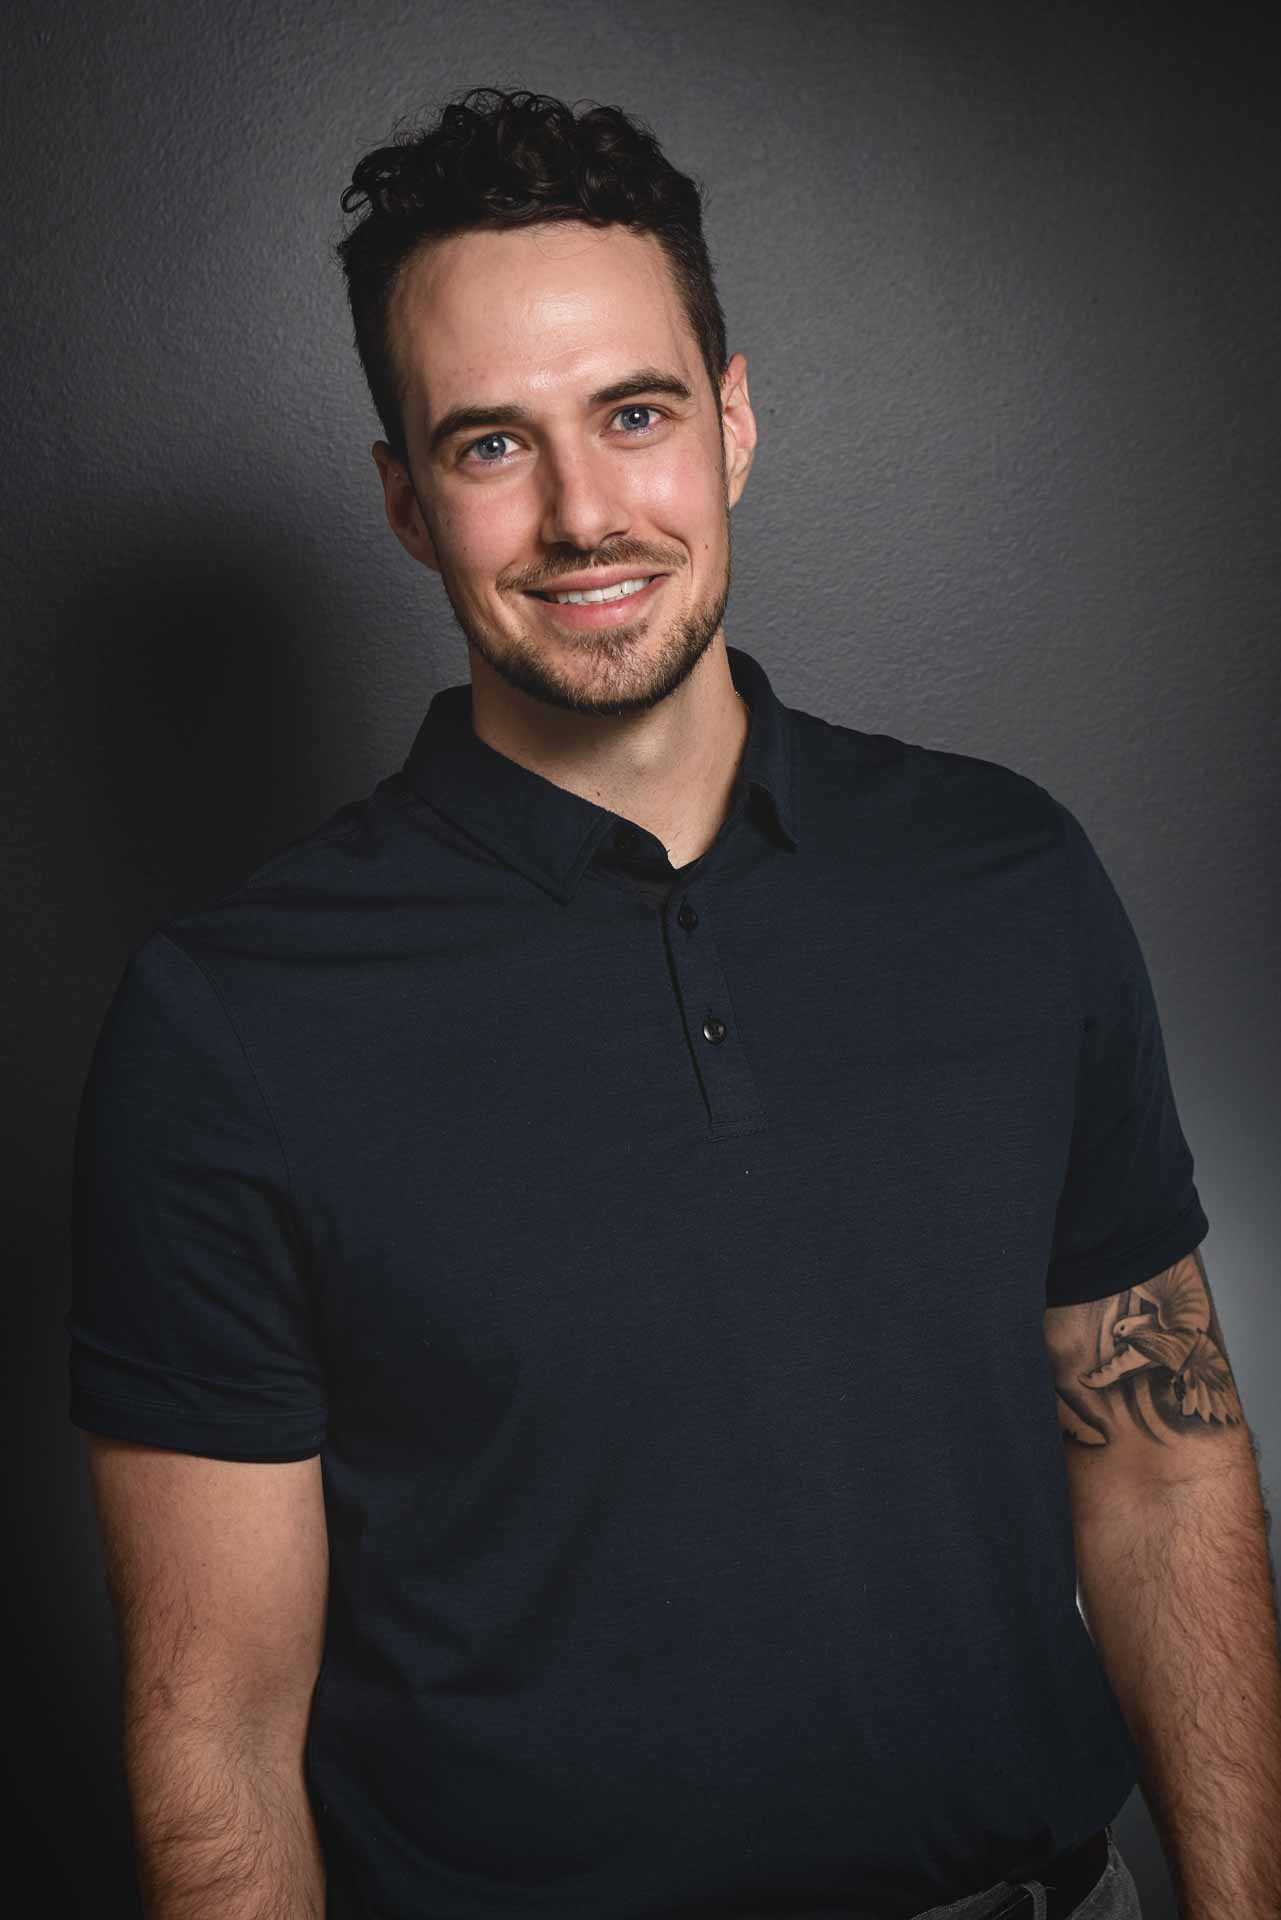 Rob Macswain | Physiotherapist | Evolve Chiropractic and Wellness | Downtown Calgary